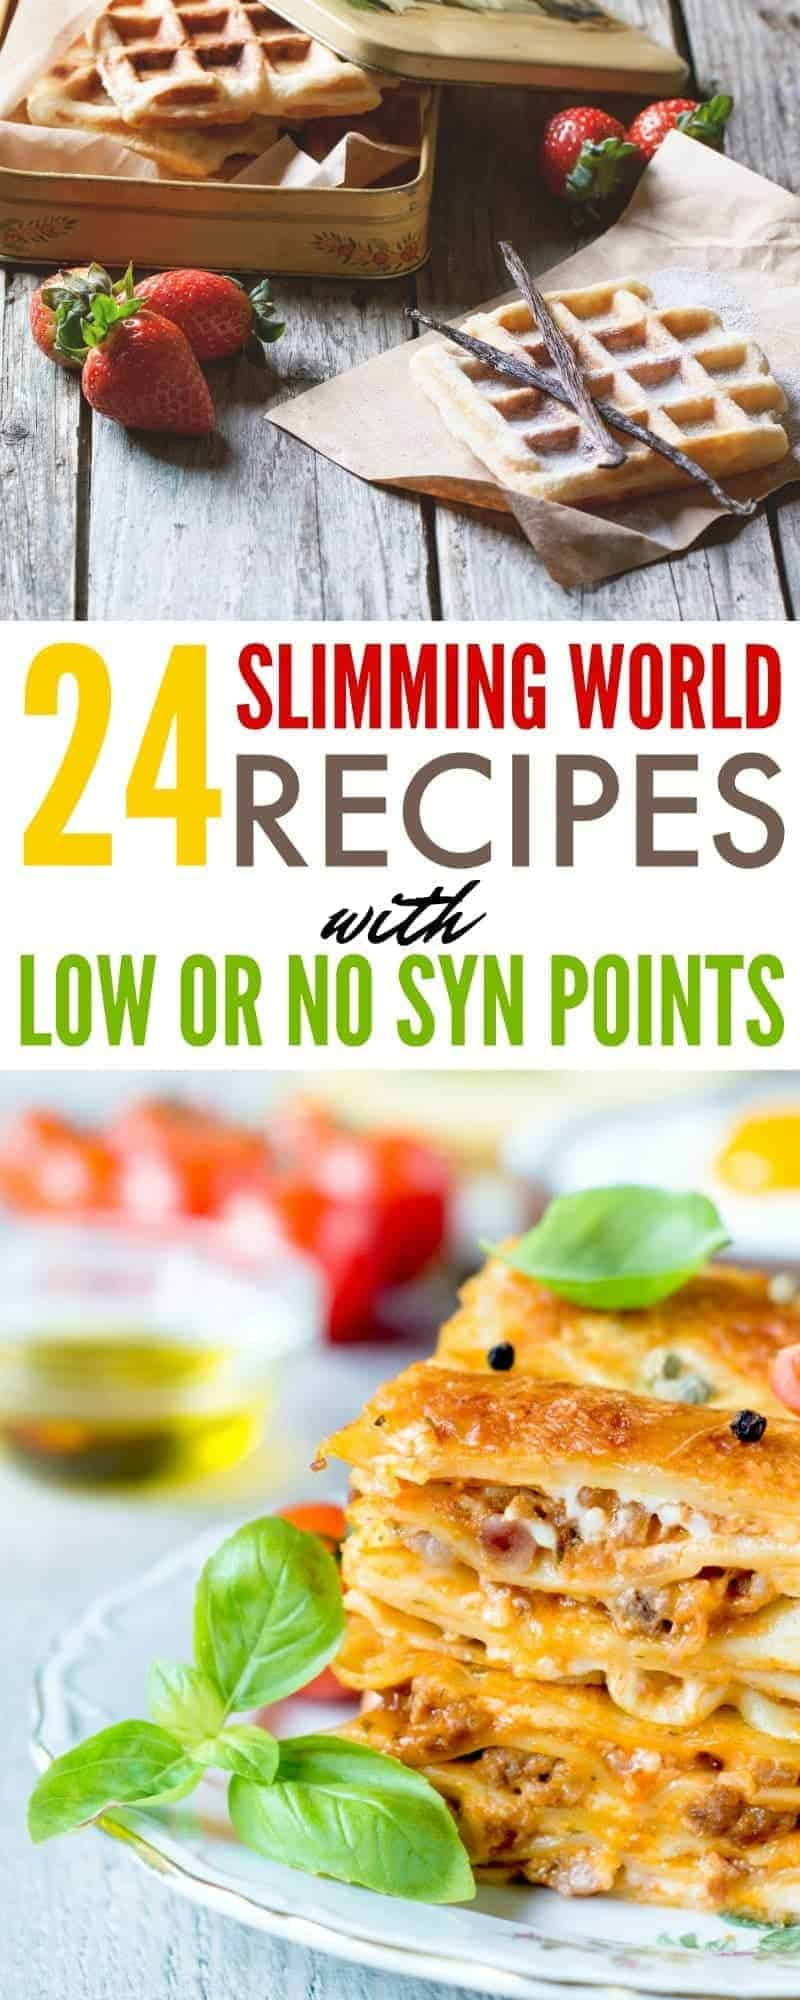 24 Slimming World Recipes With Low Or No Syn Points 730